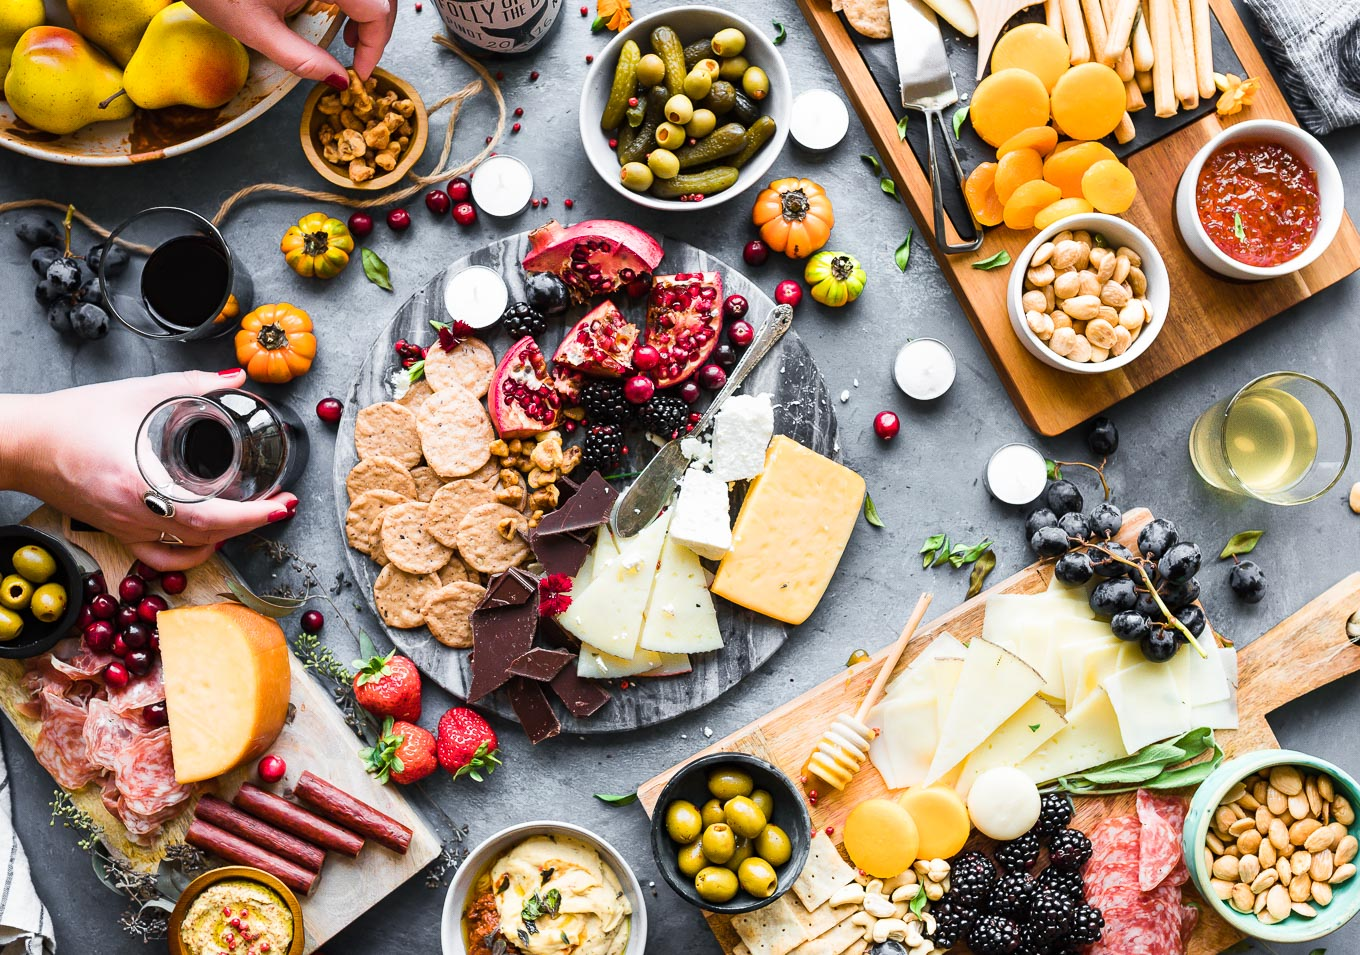 How To Host An Impromptu Wine And Cheese Party Cotter Crunch